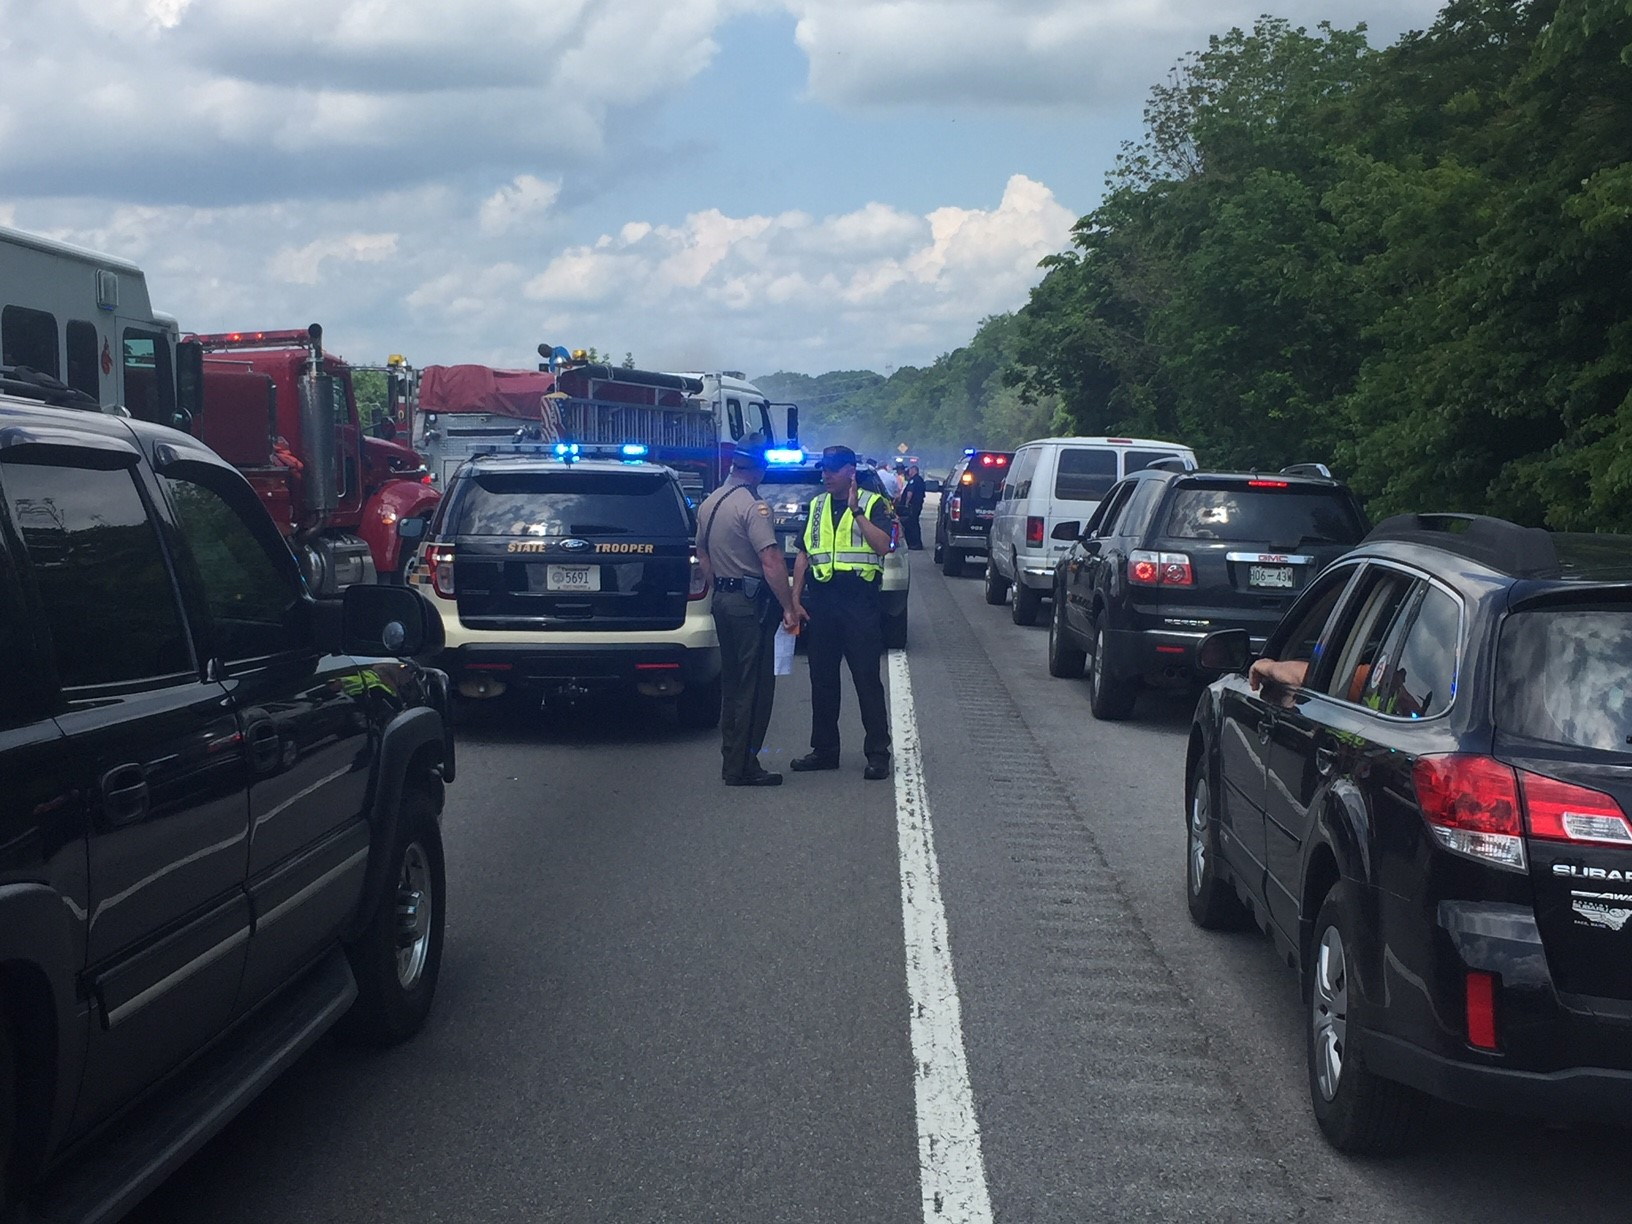 Traffic was at a stand still Wednesday afternoon following a crash between a Walmart tractor trailer and motorcycle riders involved in a 'Run for The Wall' event on Interstate 81 near Fall Branch, Tennessee. (K. Roberts, WCYB)<p></p>